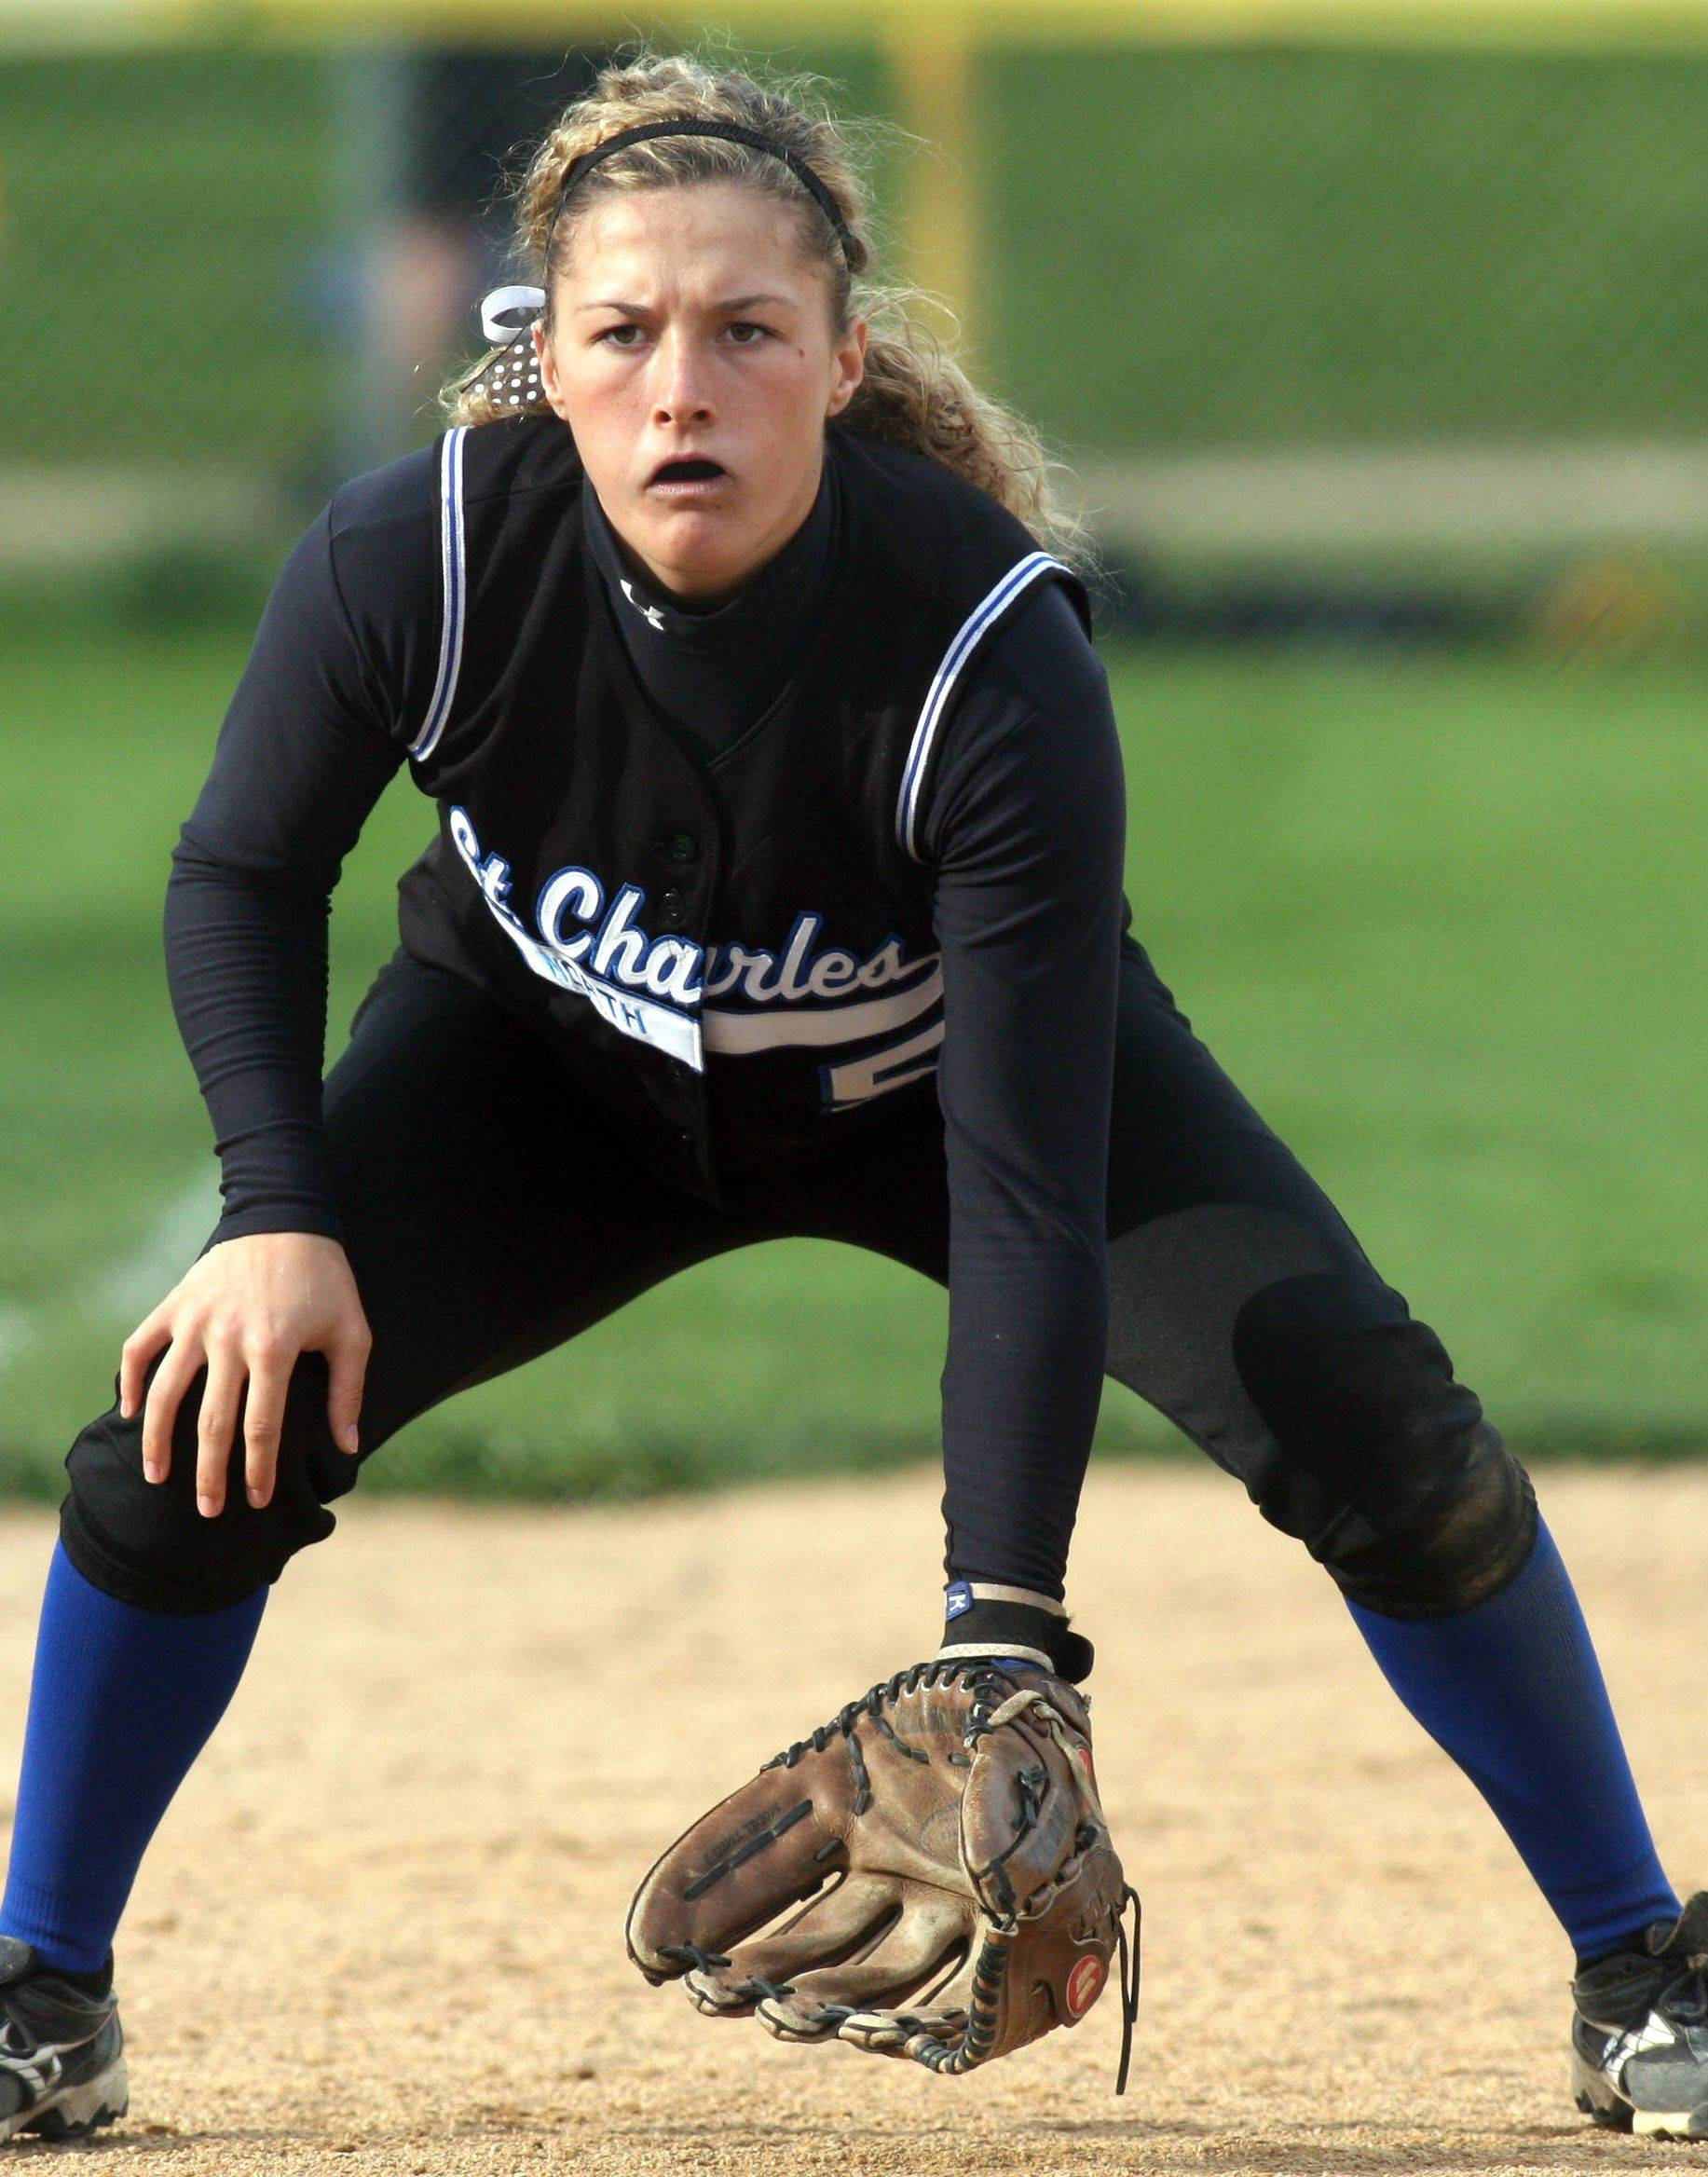 Third baseman Taylor Russell of St. Charles North prepares for action during varsity softball action at Elgin High School Monday evening.